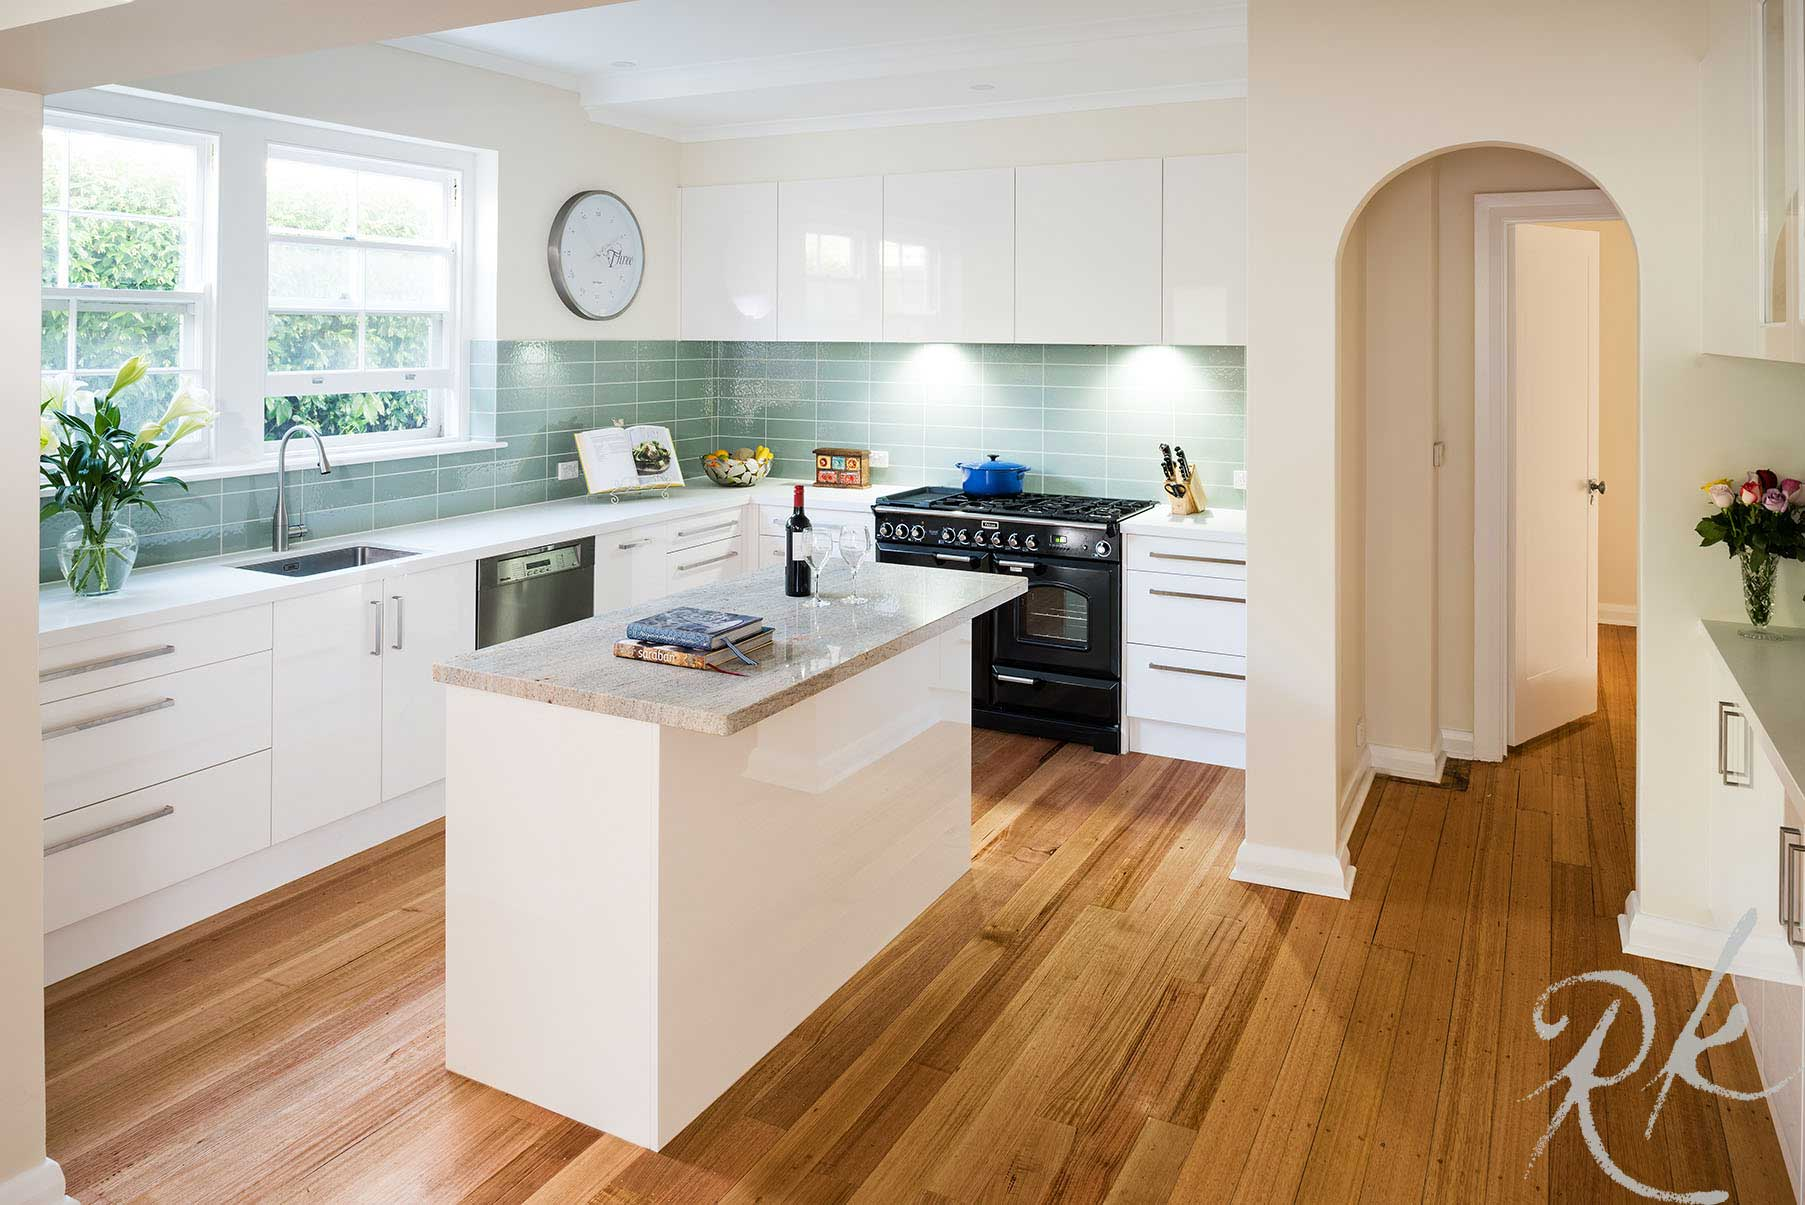 Laminate Kitchens Rosemount Kitchens